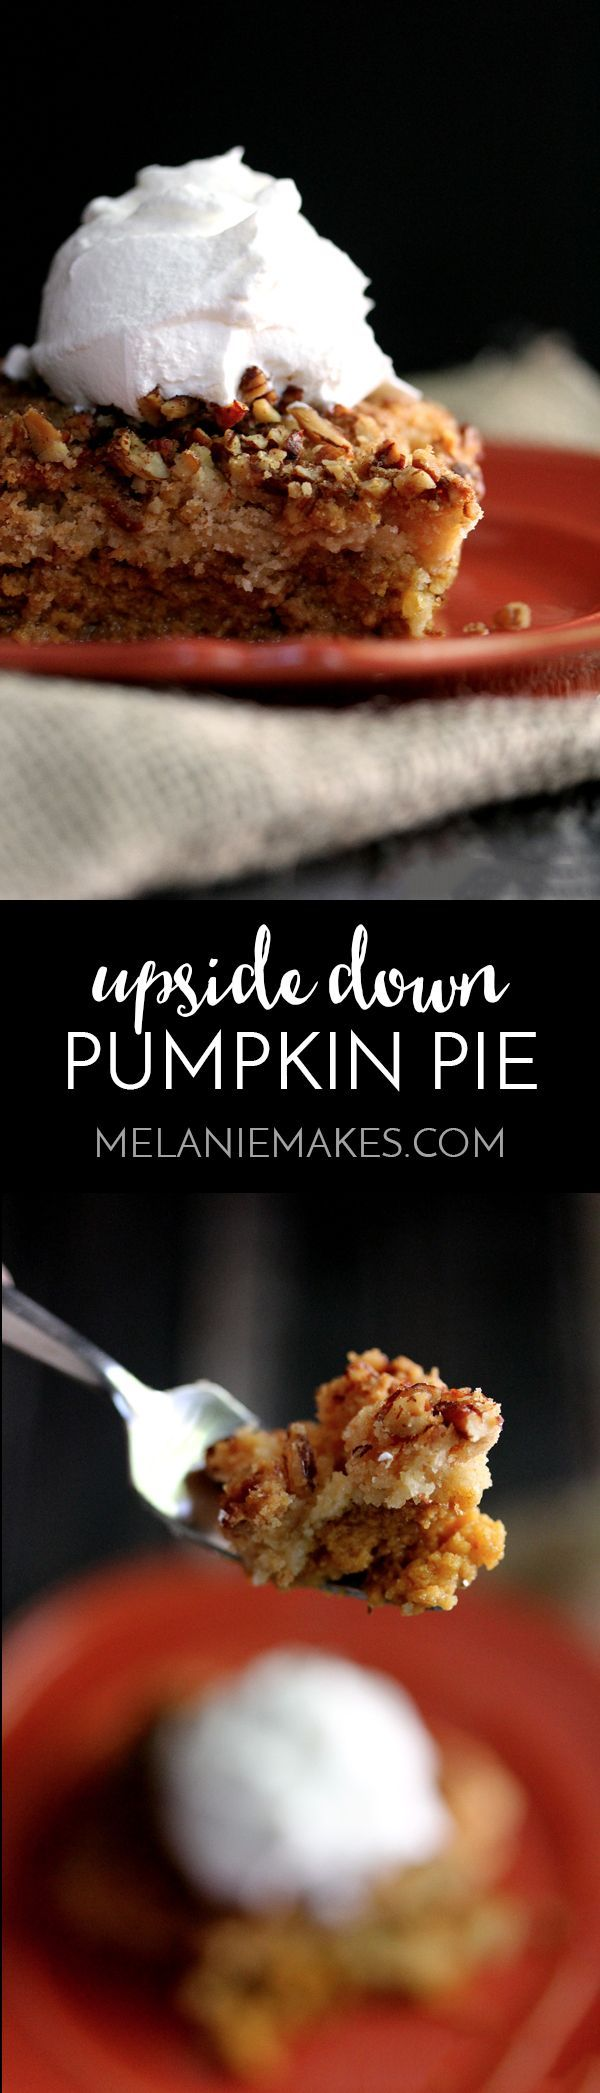 Forget the traditional and try something a bit different! This Upside Down Pumpkin Pie flips your traditional Thanksgiving dessert putting the pumpkin filling on the bottom and the crust-like crunch on top. The end result is anything but typical and one you'll ensure is on your Turkey Day menu from here on out!